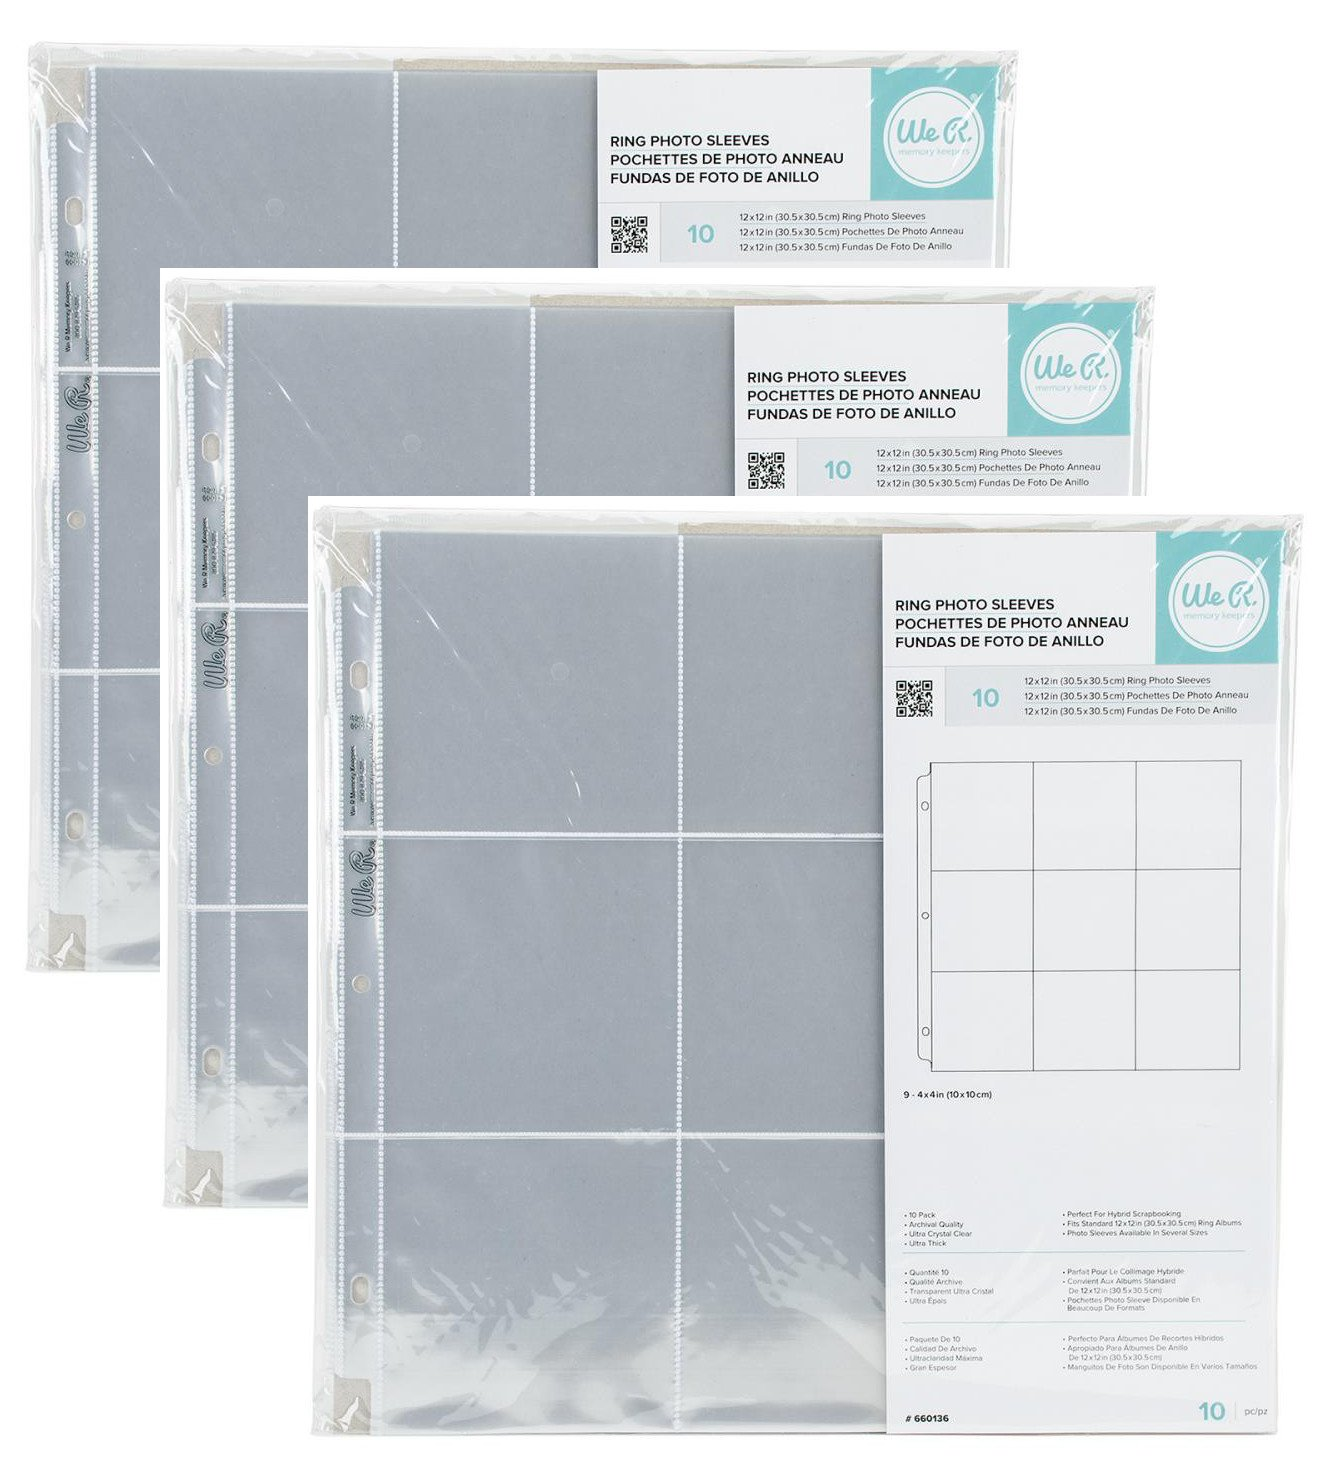 2-PACK - We R Memory Keepers 12 x 12 inch (9 - 4 x 4 inch pockets) 3-Ring Album Photo Sleeve Protectors , 10 Pk UnAssigned 4336978215